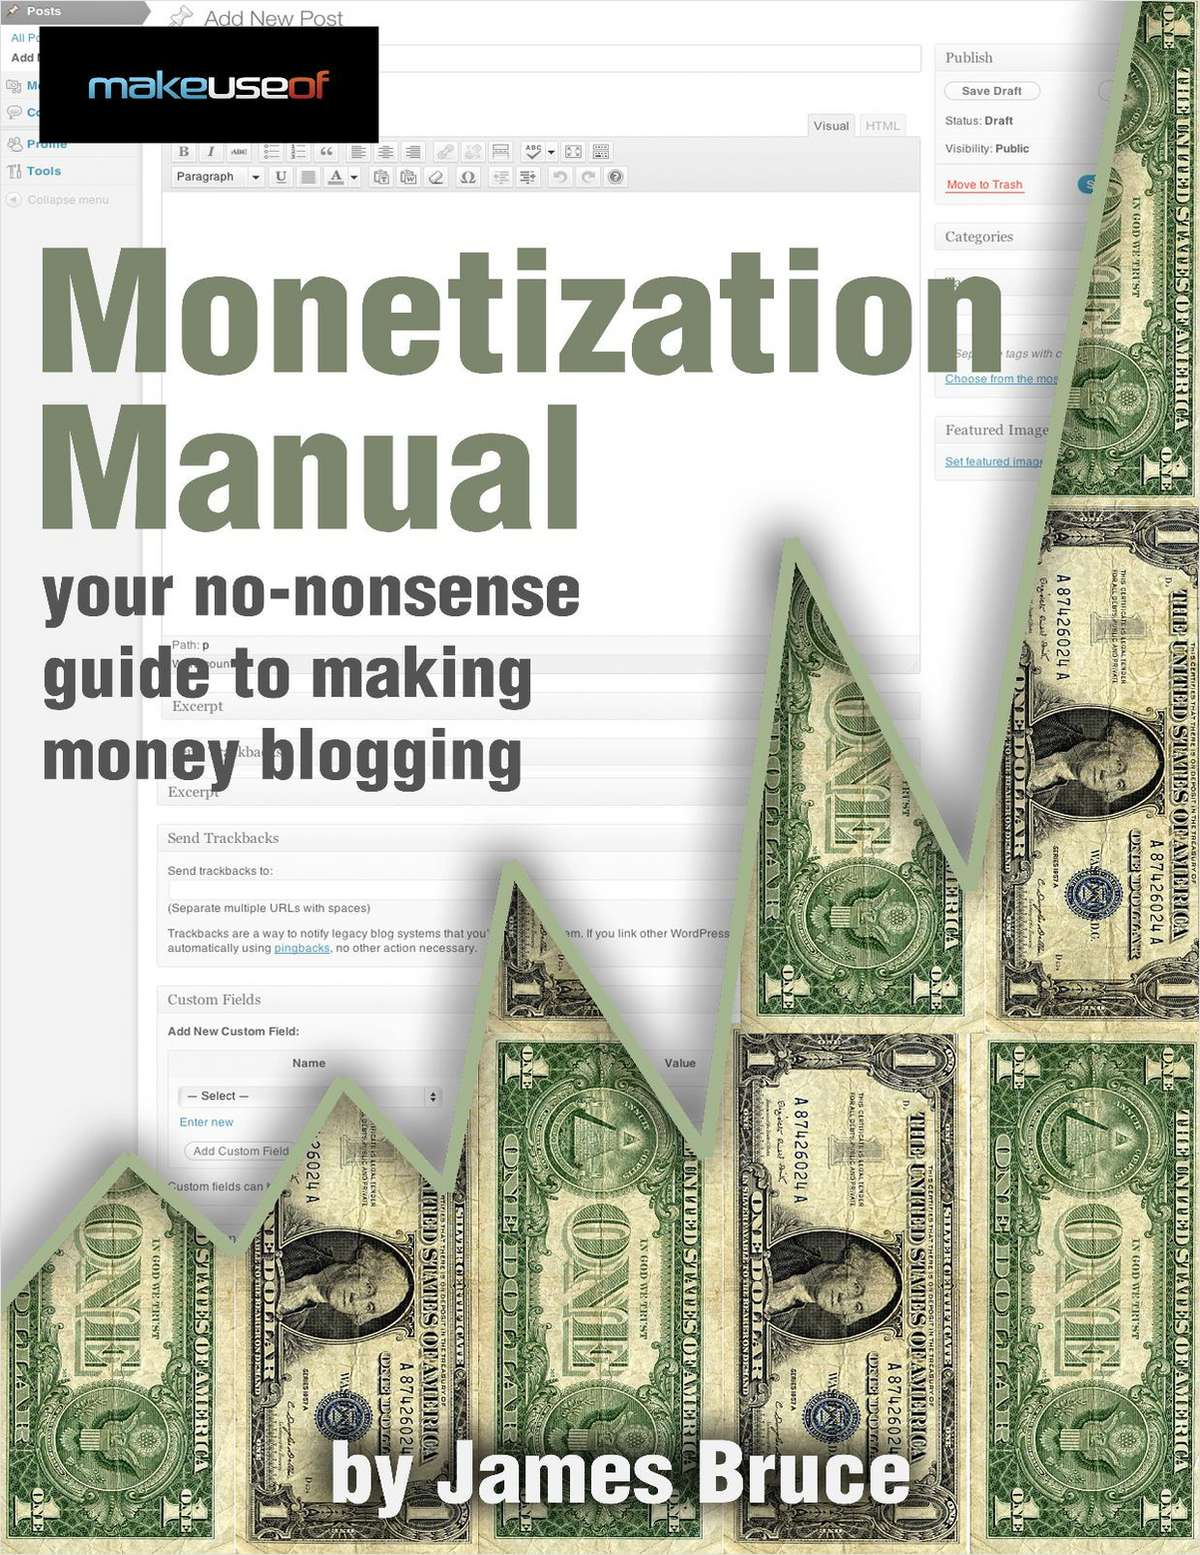 Monetization Manual: Your No-Nonsense Guide to Making Money Blogging